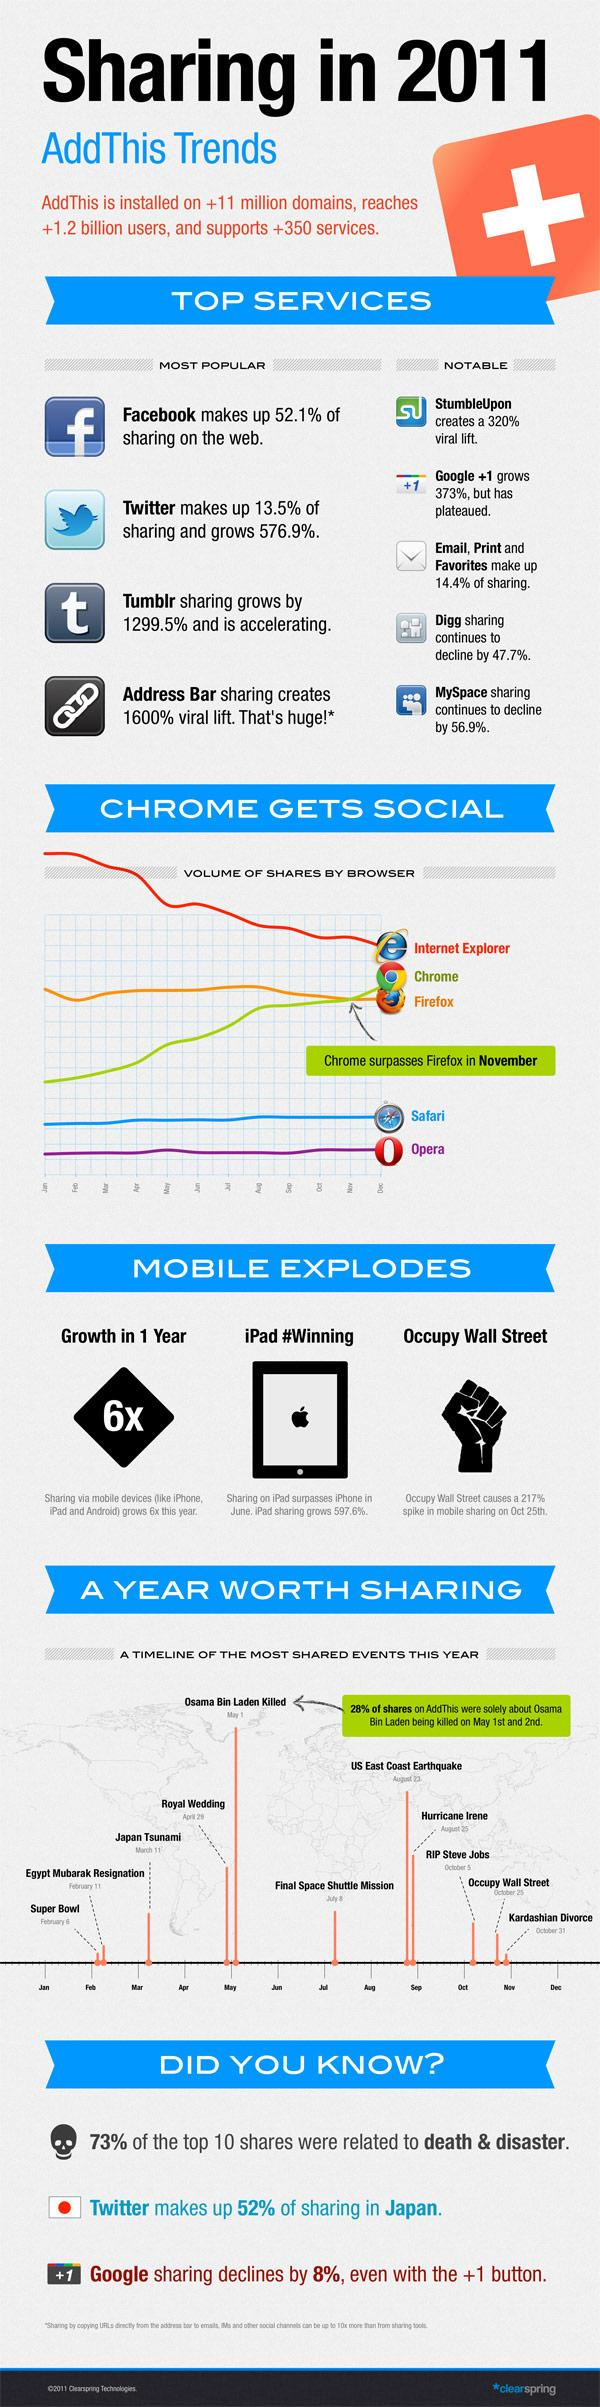 Sharing Trends in 2011 | AddThis Blog